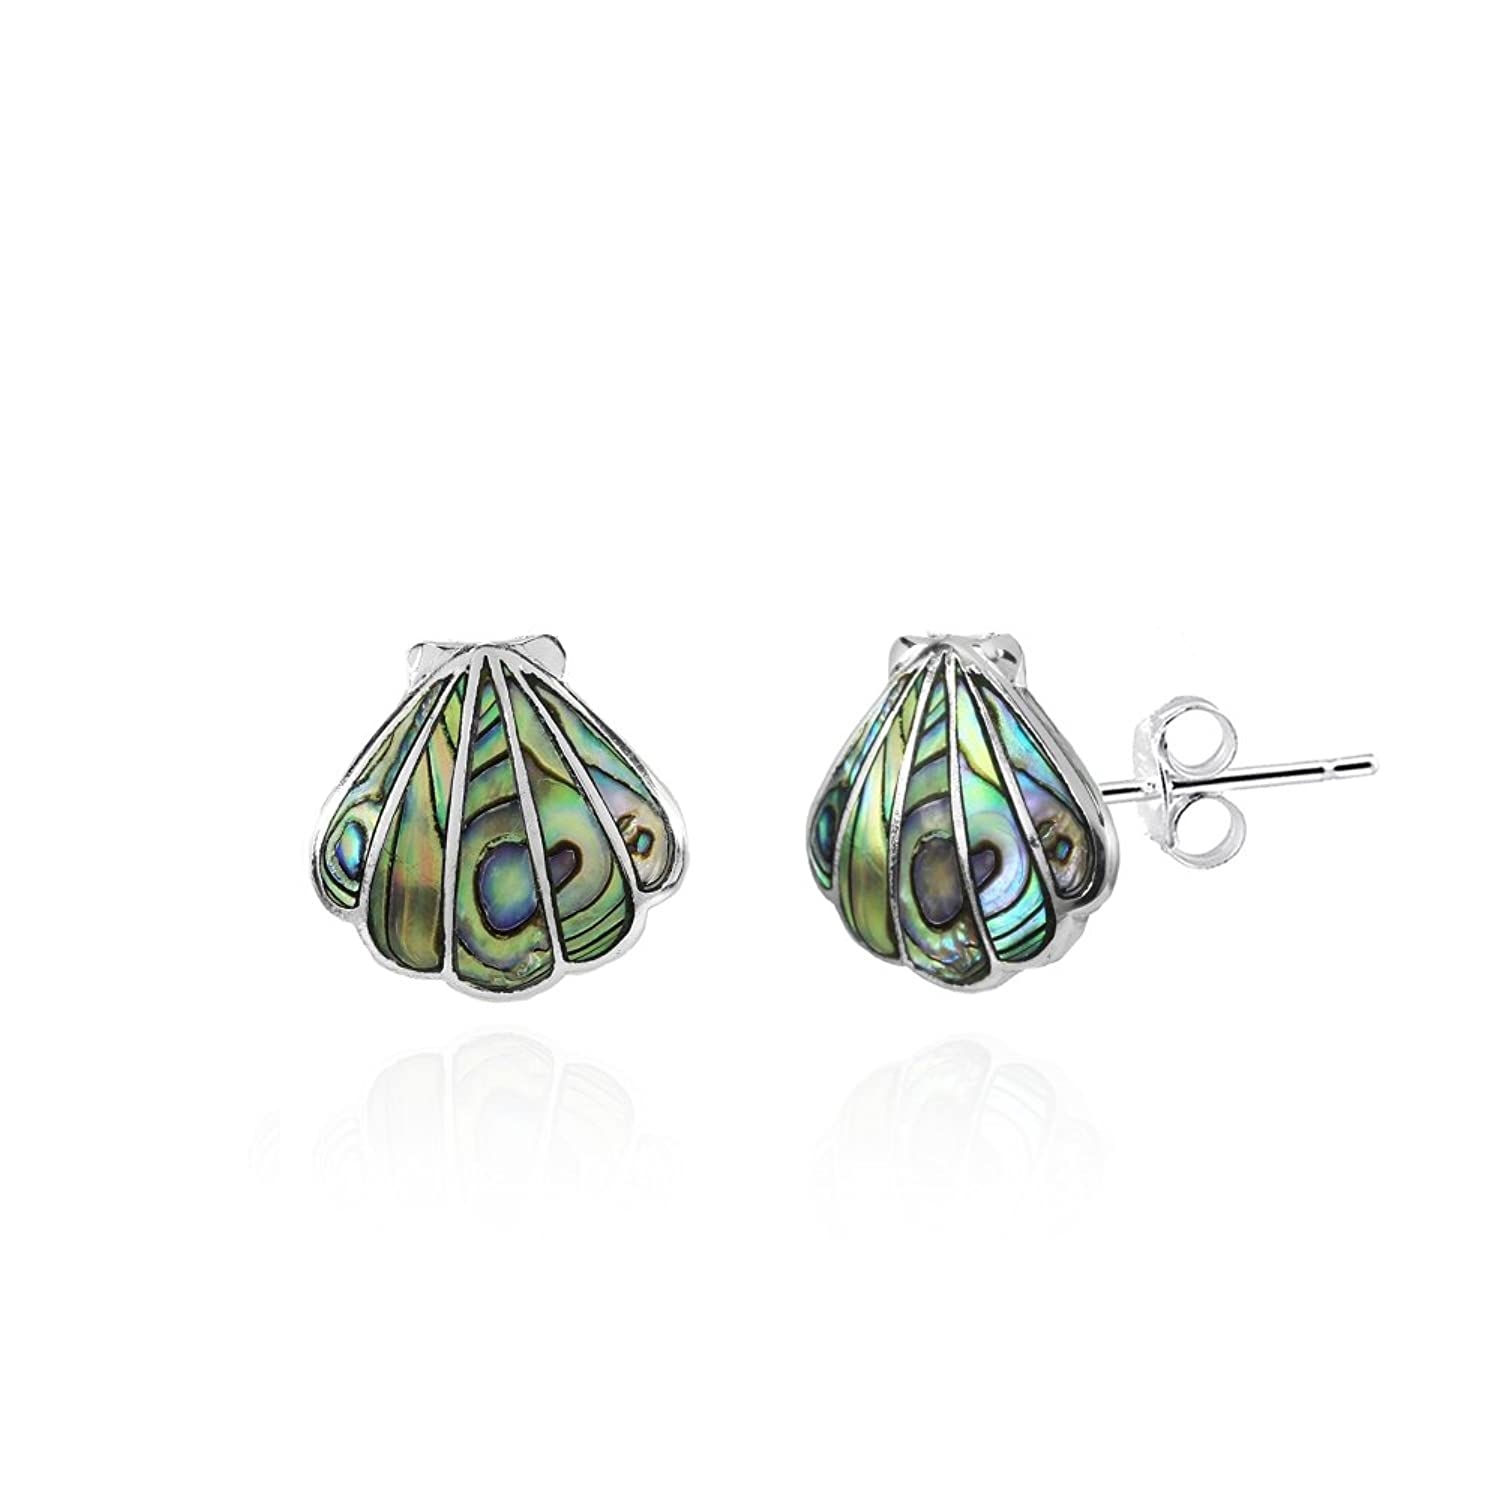 chanel enlarged stud earrings realreal products jewelry abalone the